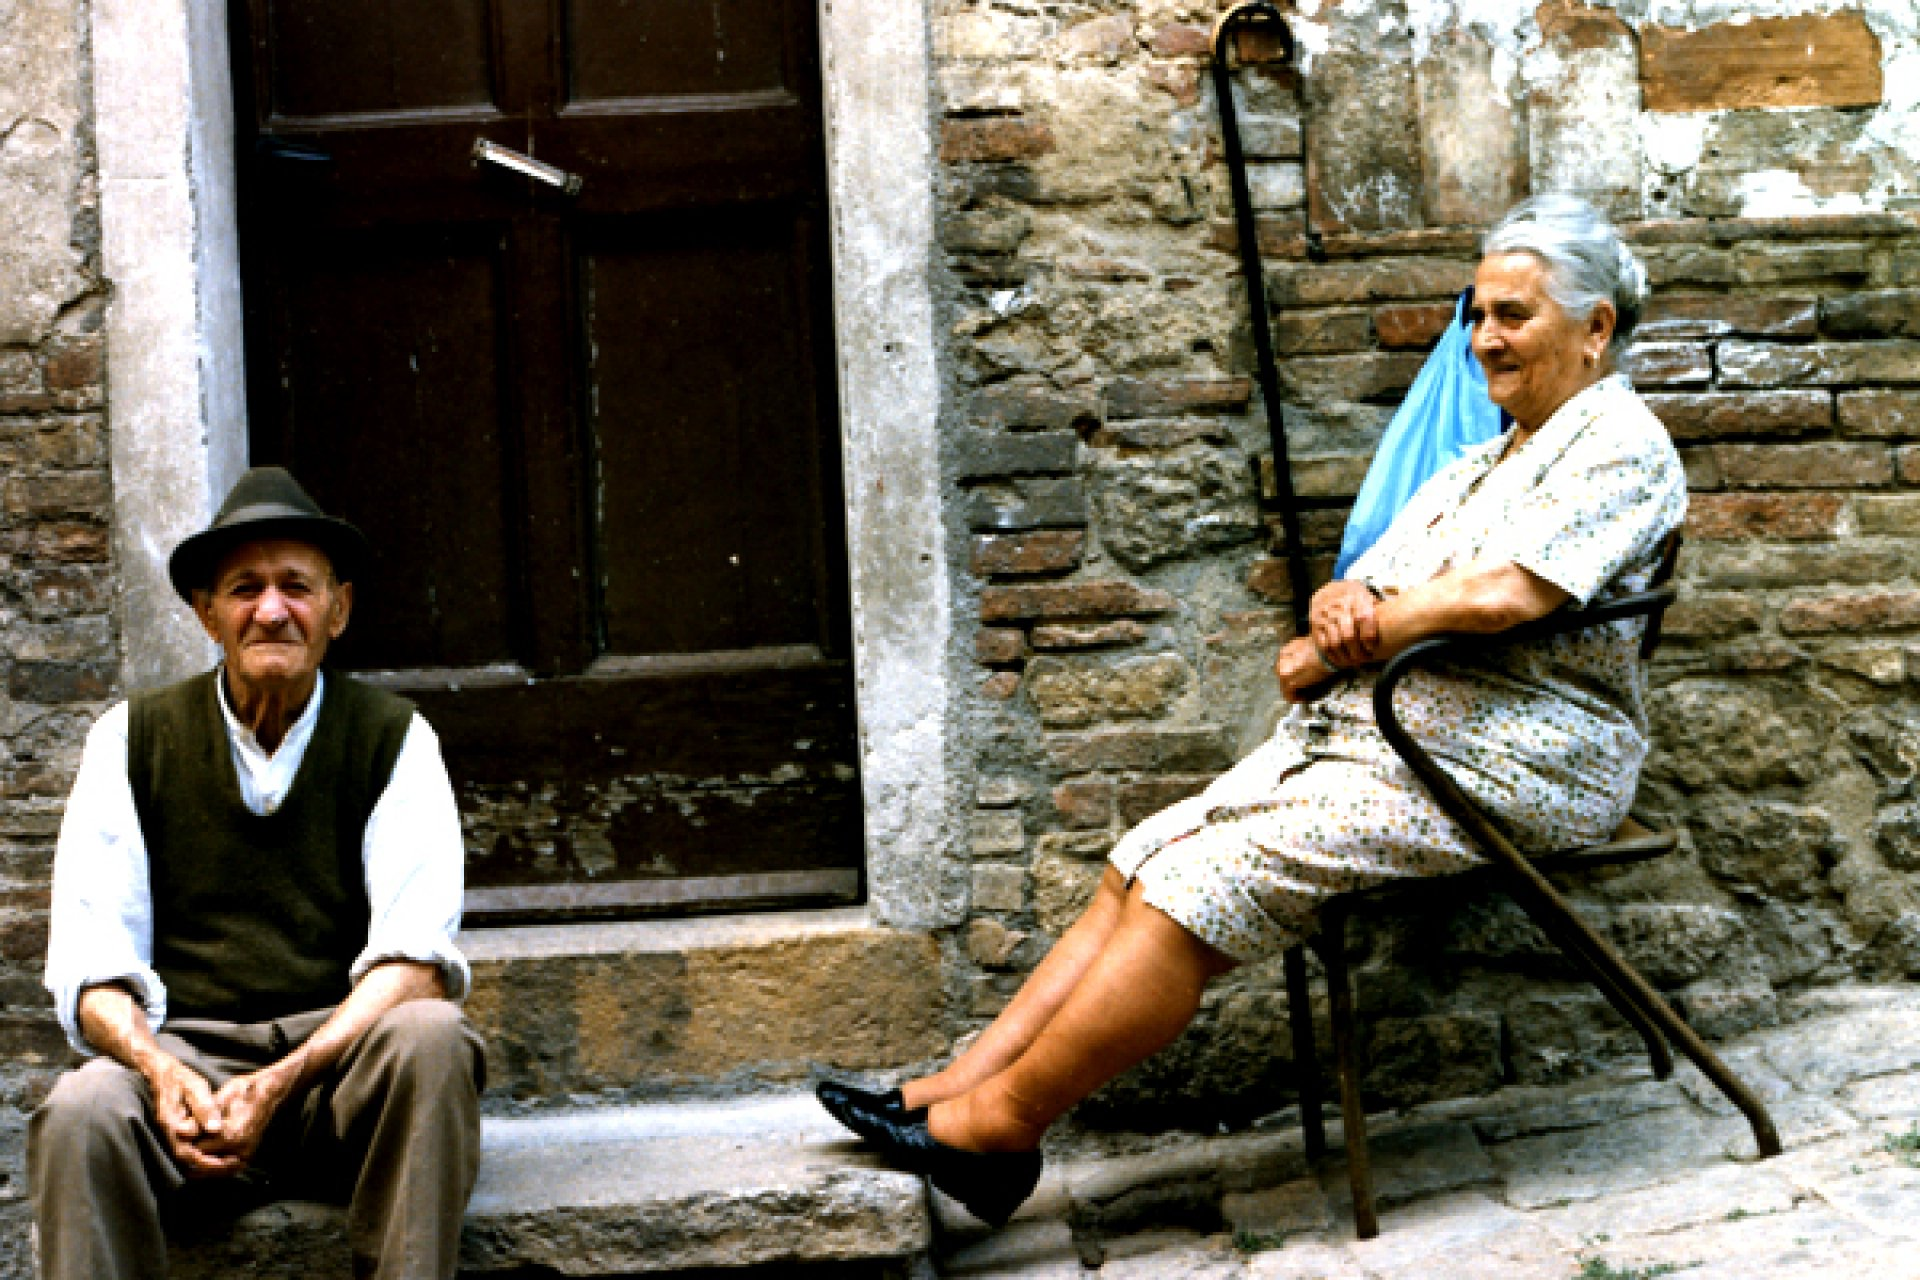 https://media.canal3.md/image/201508/full/old-italian-couple-31125000.jpg | Canal3